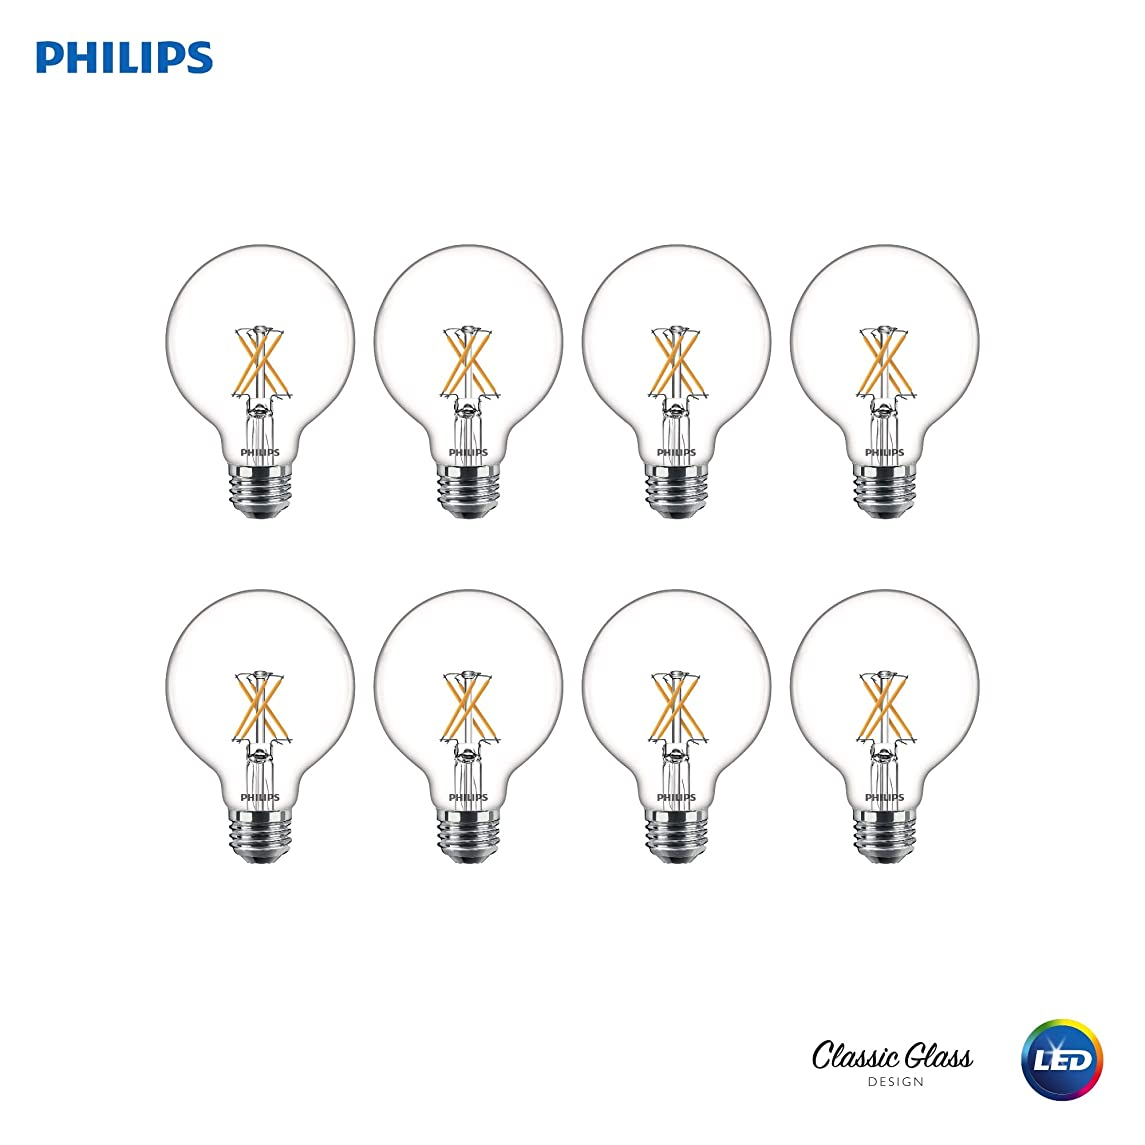 Philips 536557 LED Dimmable G25 Clear X-Filament Glass Light Bulb with Warm Glow Effect: 350-Lumens, 2700-Kelvin, 4 (40-Watt Equivalent), Soft White, E26 Medium Screw Base, 8 Pack, Piece